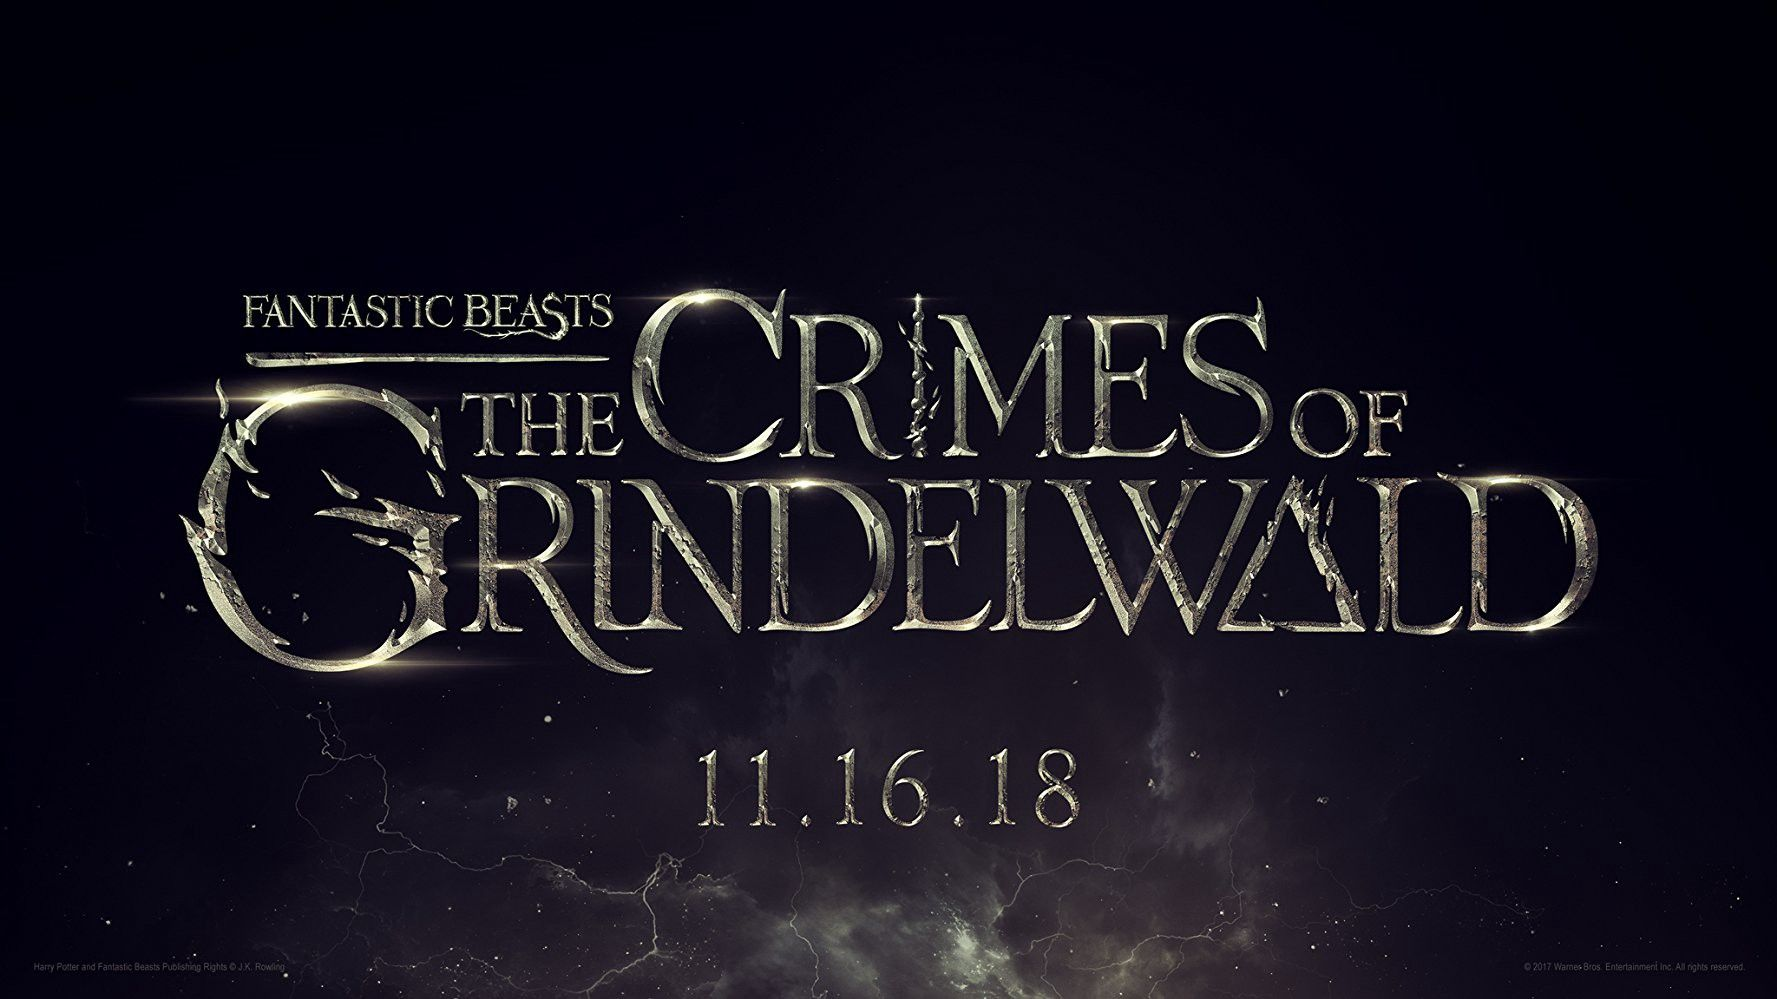 watch fantastic beasts the crimes of grindelwald online for free